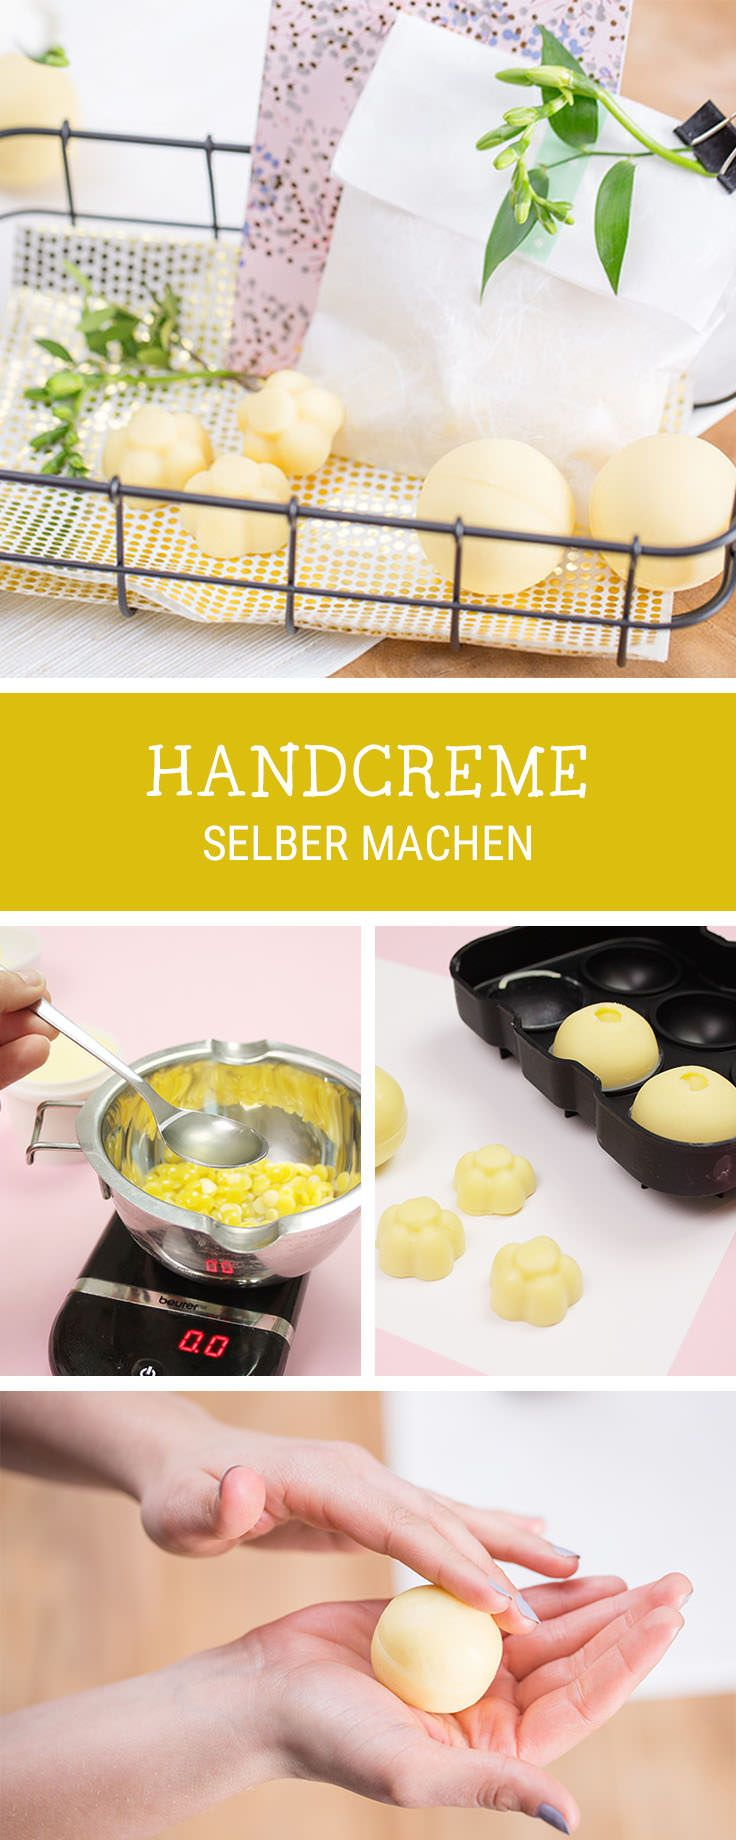 Handcreme selbermachen: DIY für selbstgemachte Creme als Geschenkidee, organische Kosmetik / handmade organic cosmetic: diy tutorial for homemade hand cream via DaWanda.com – Kibbee Chan